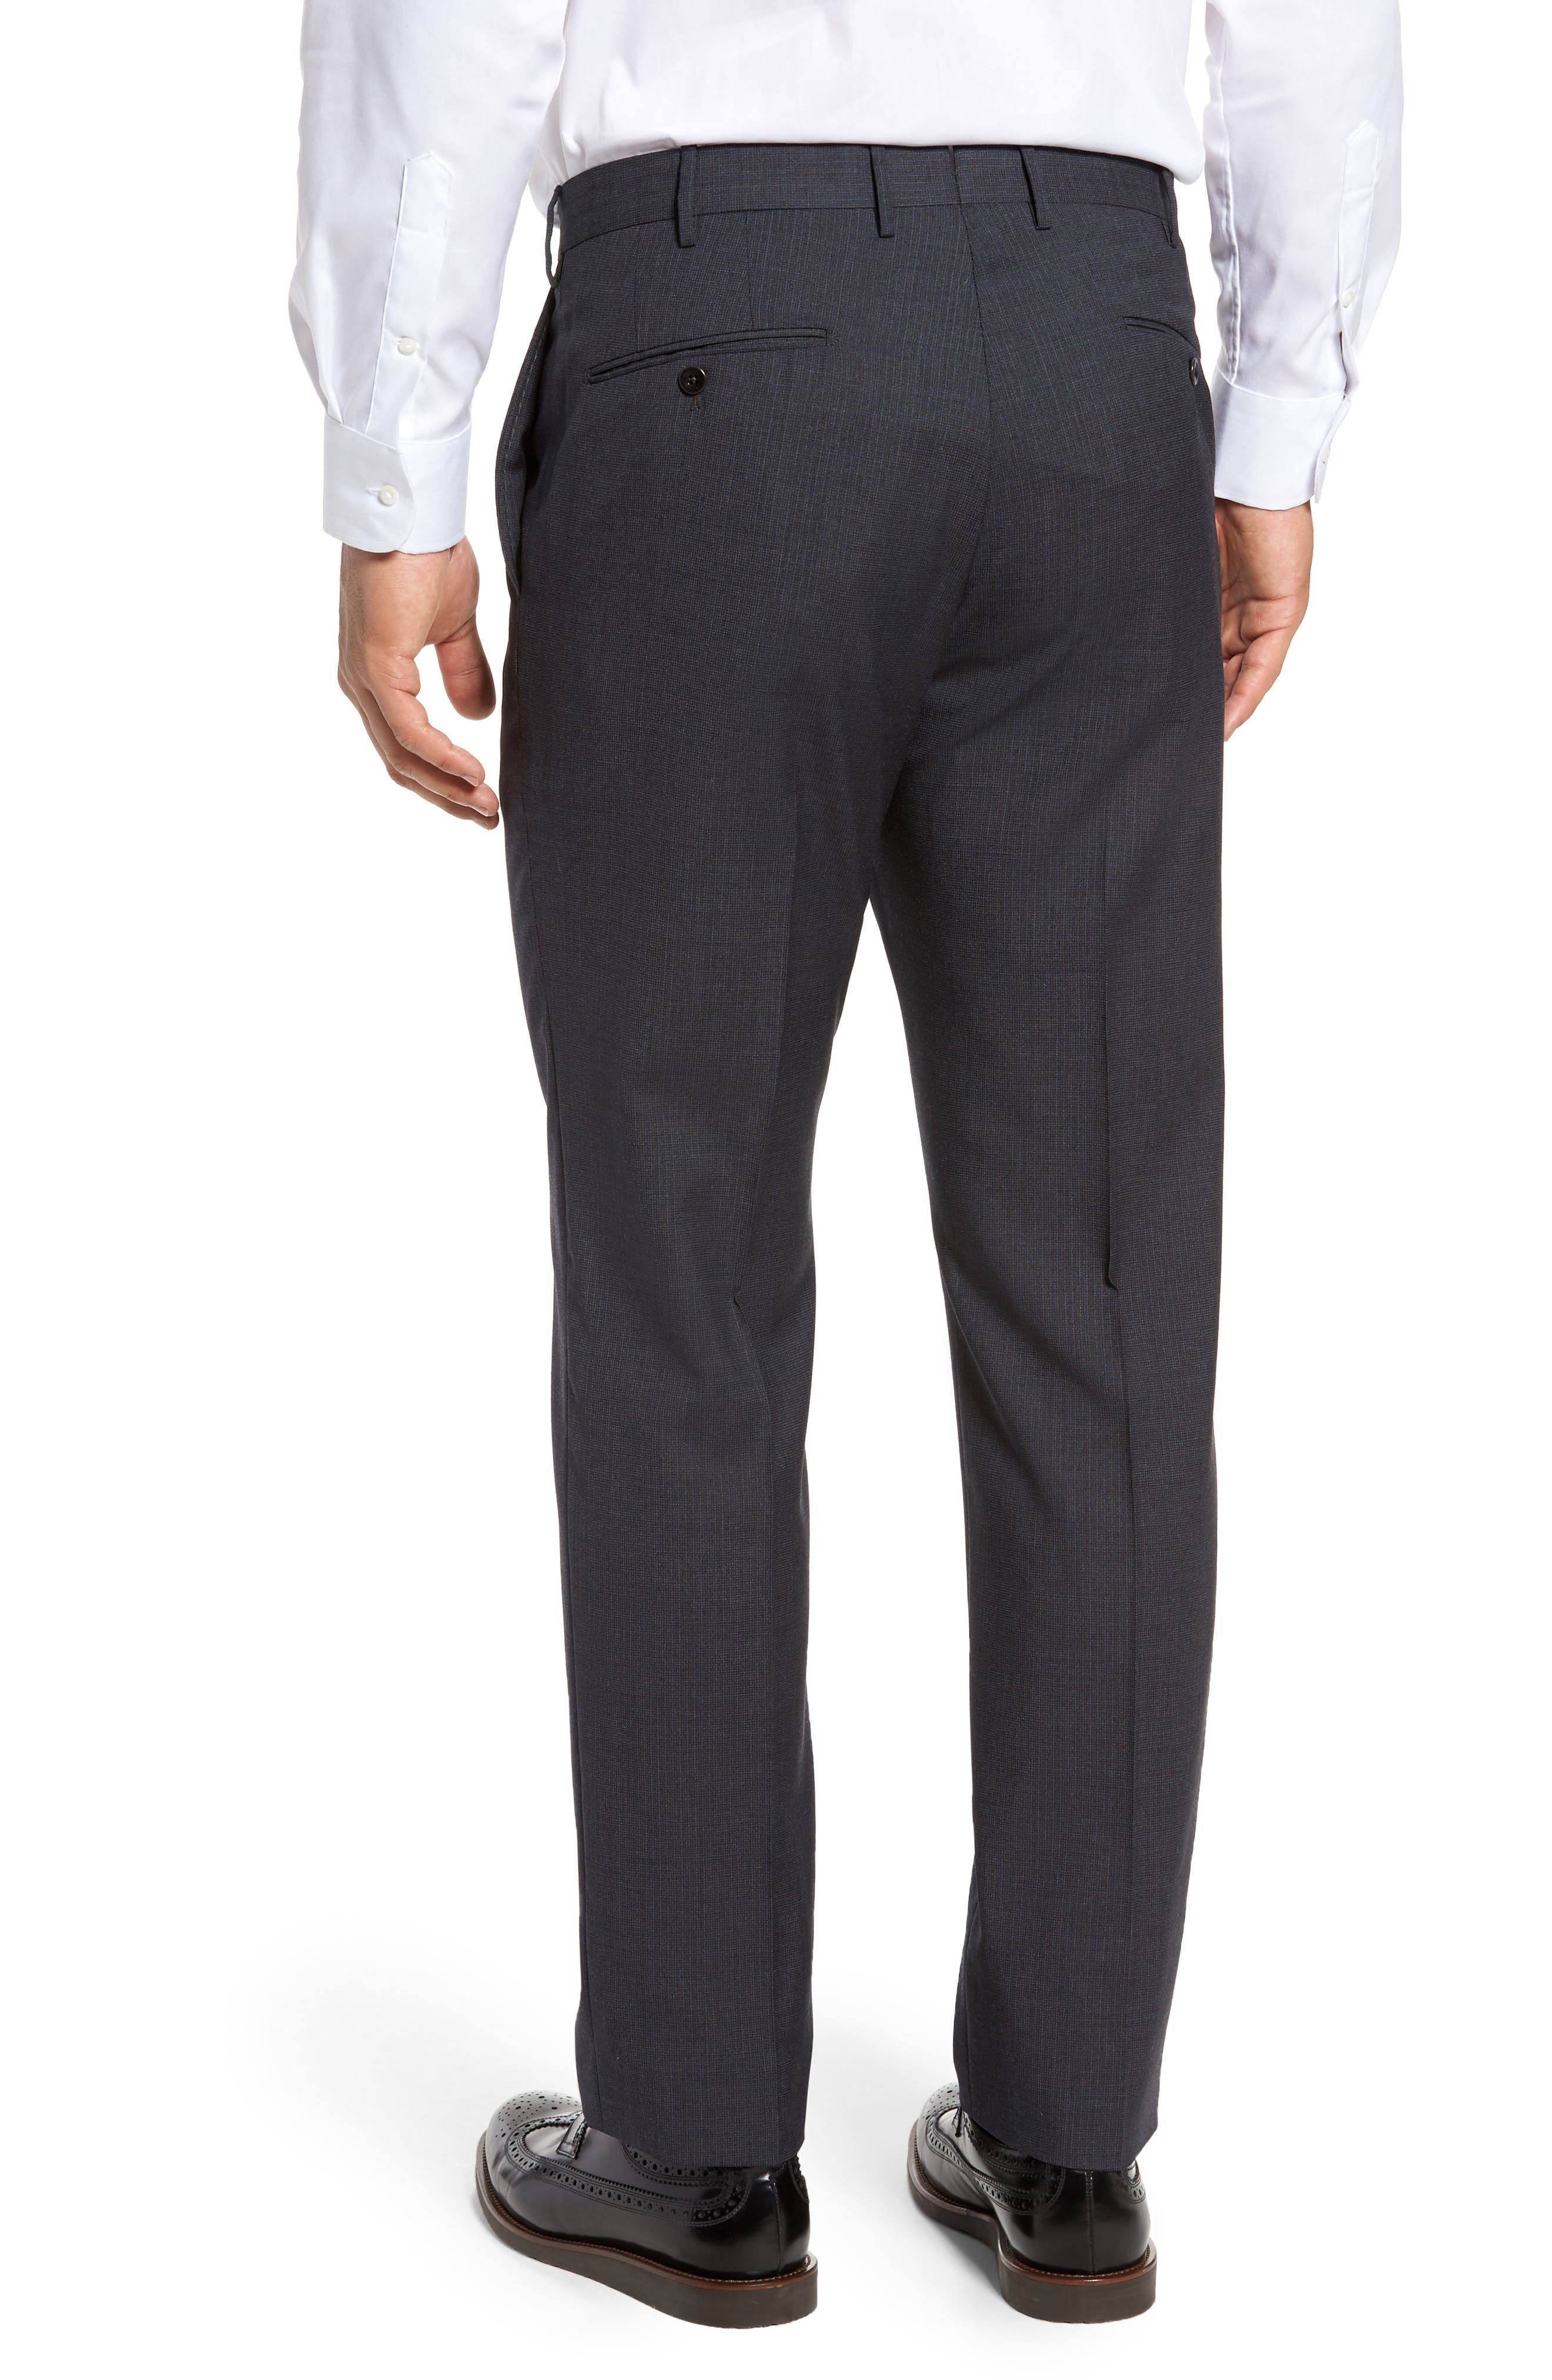 Benson Flat Front Wool Trousers,                             Alternate thumbnail 3, color,                             015